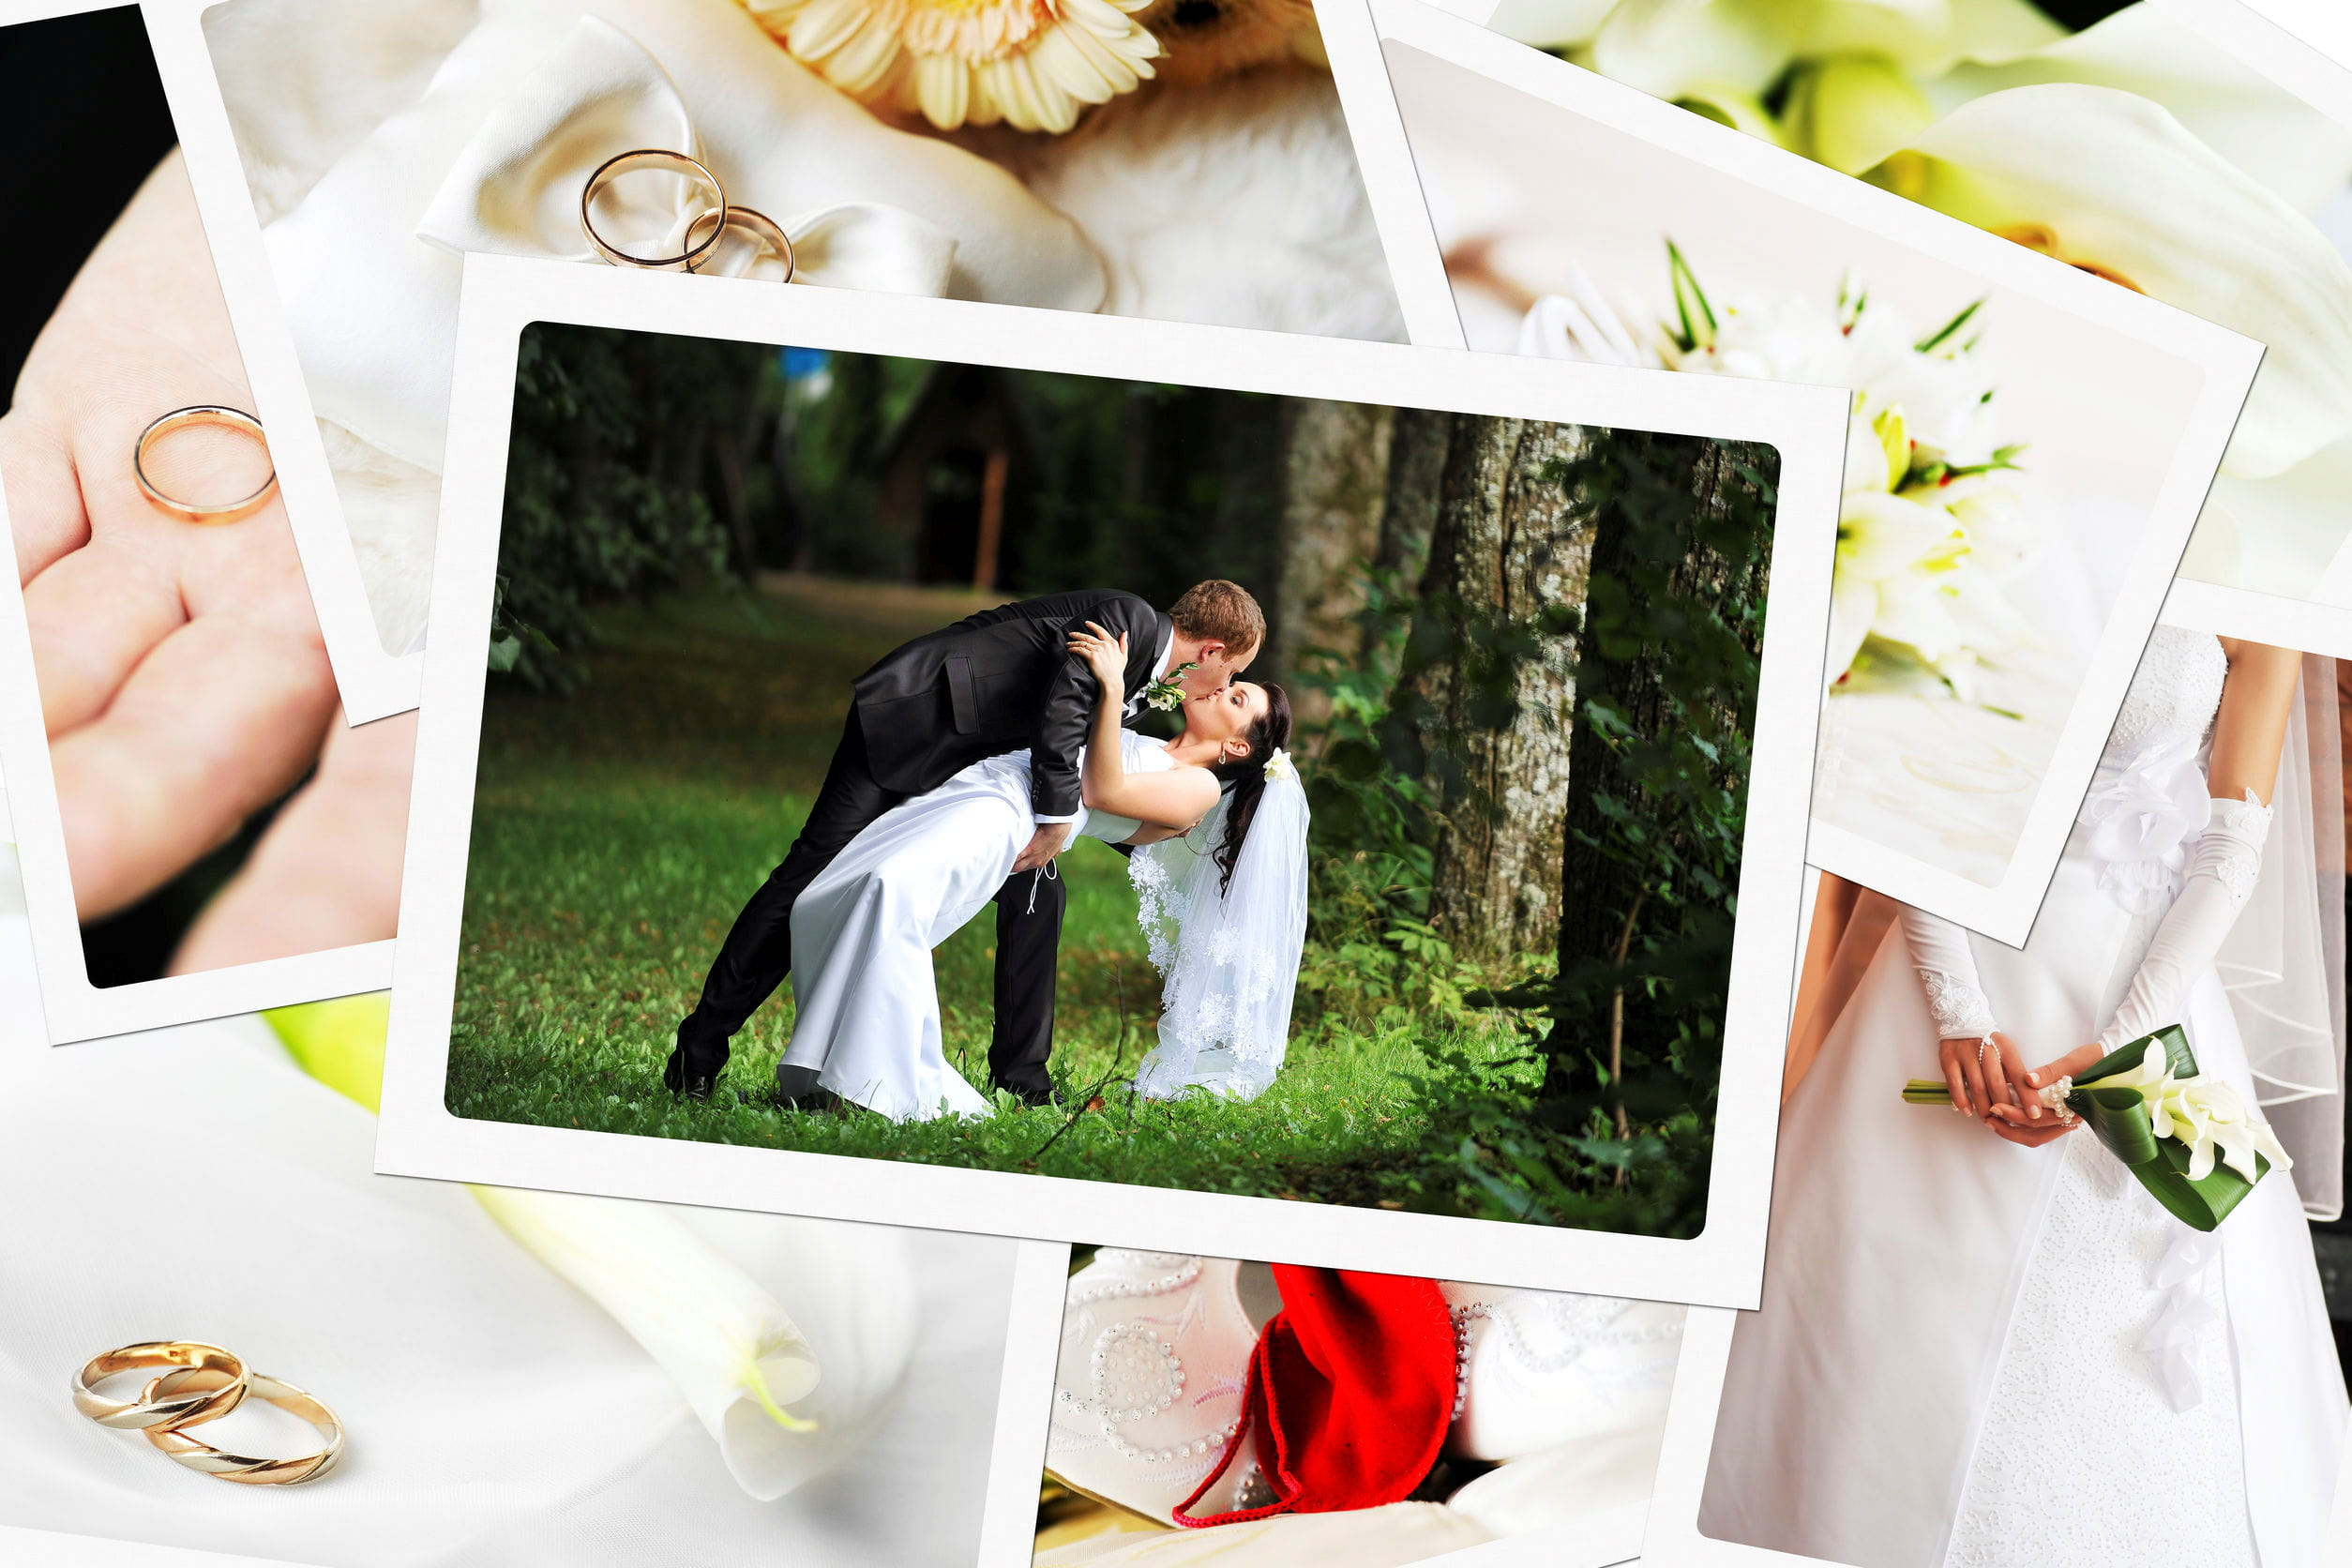 les photos de mariage font souvent lobjet de collages photo cratifs denis tabler 123rf - Montage Video Mariage Gratuit